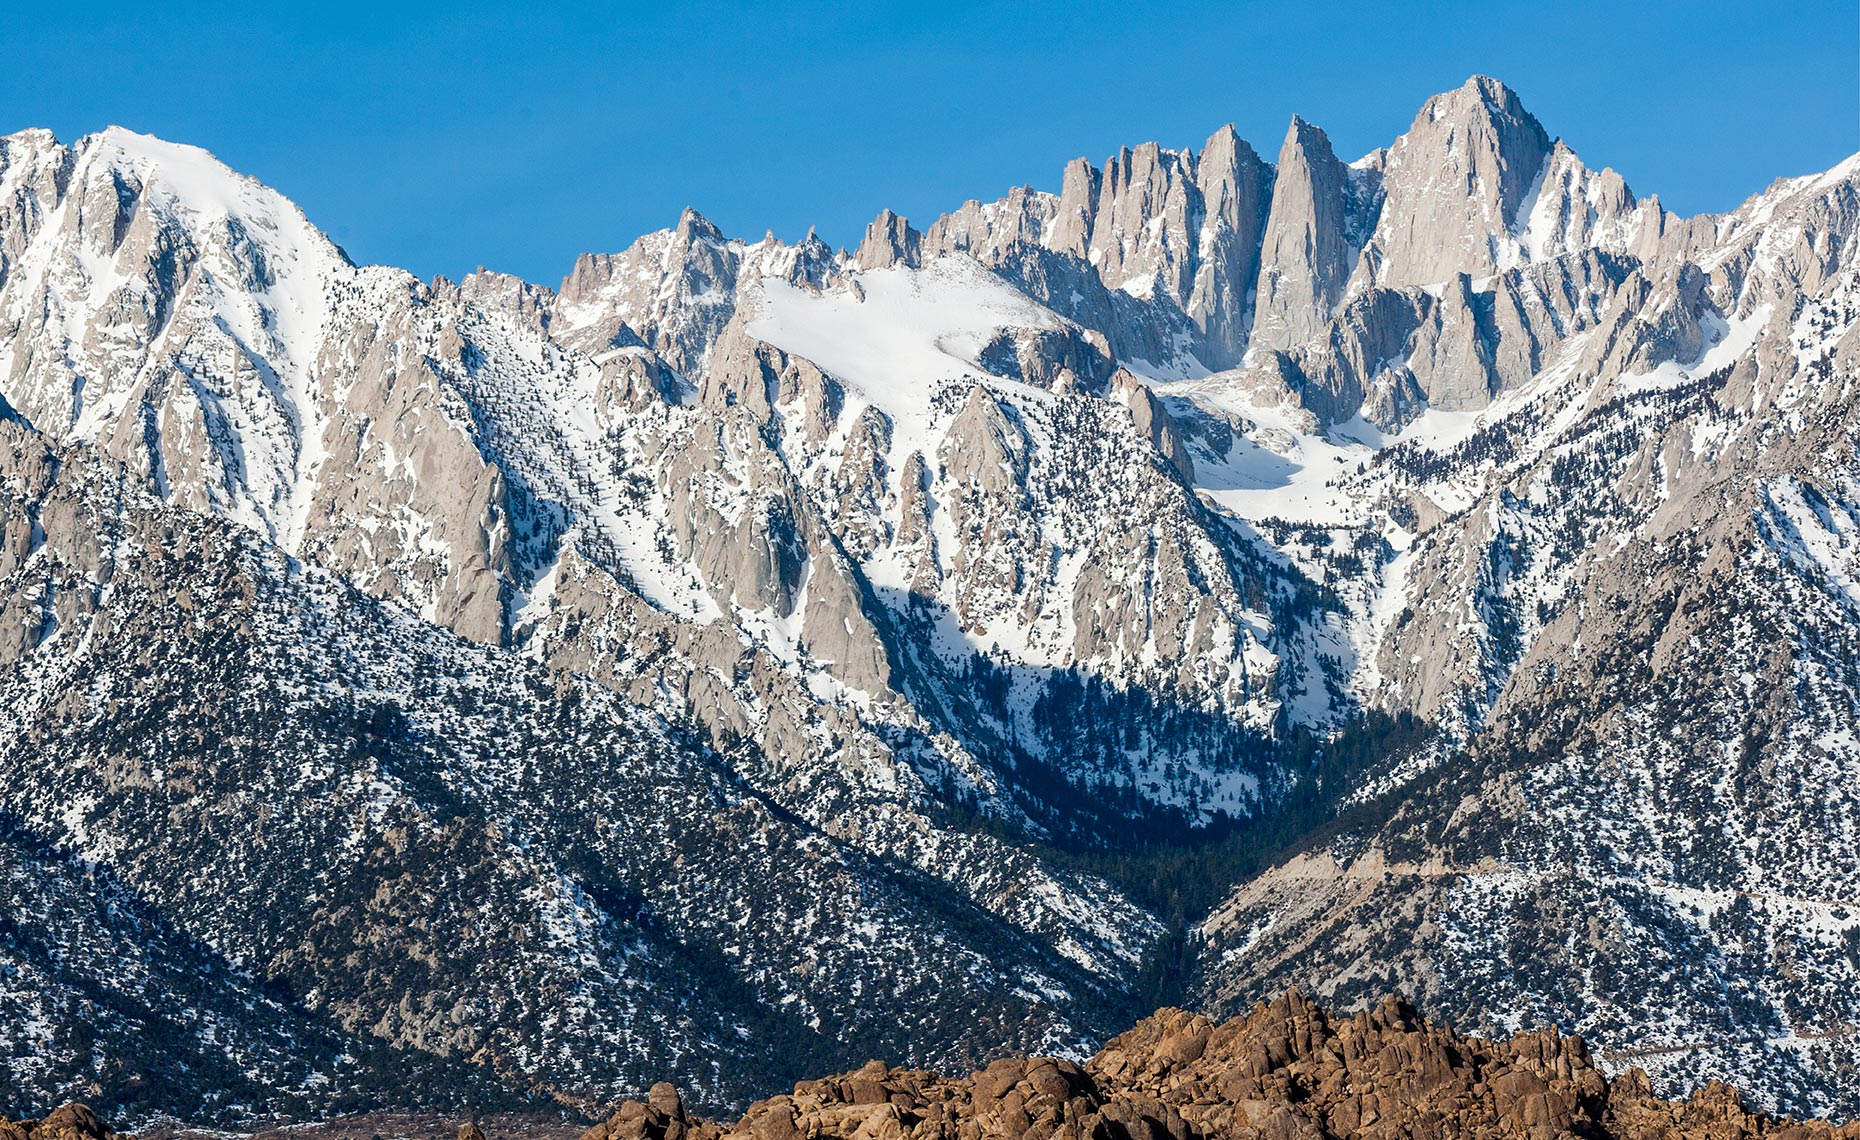 01_Mt_Whitney_California_Environment_Landscape_Chris_Wellhausen_Photography.JPG